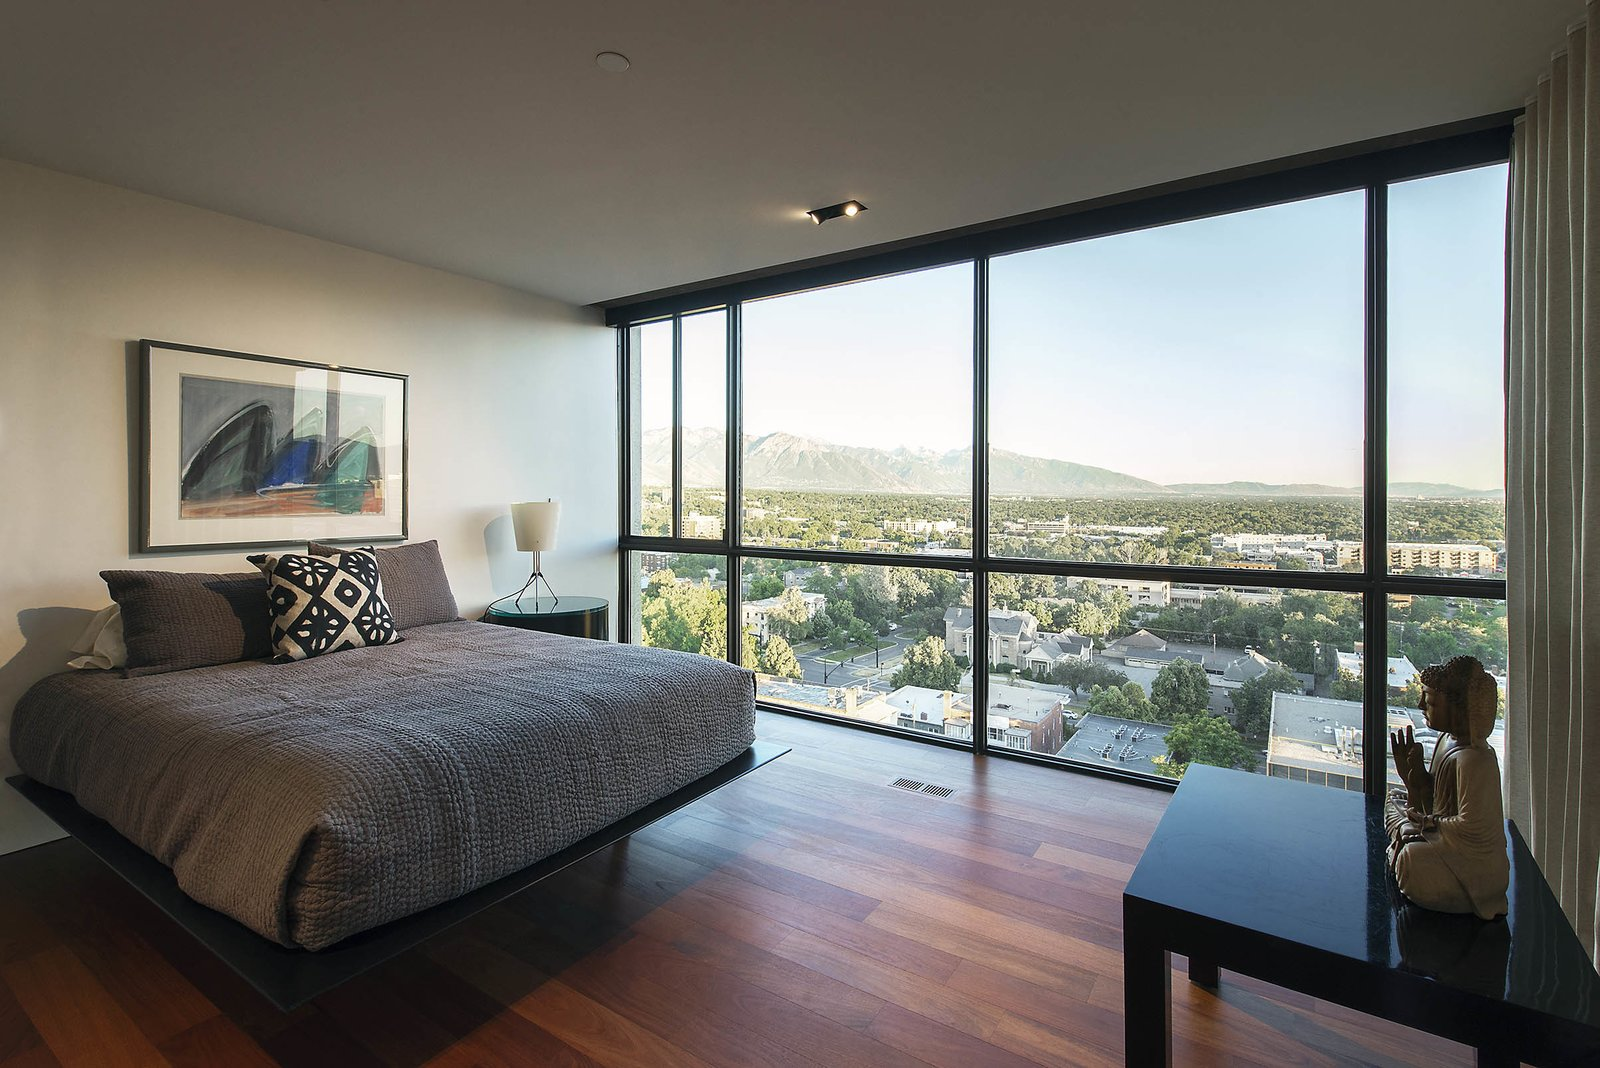 Bedroom, Night Stands, Lamps, Table Lighting, Bed, Recessed Lighting, and Medium Hardwood Floor guest bedroom - looking  to wasatch mountain range beyond  Best Photos from Governors Plaza